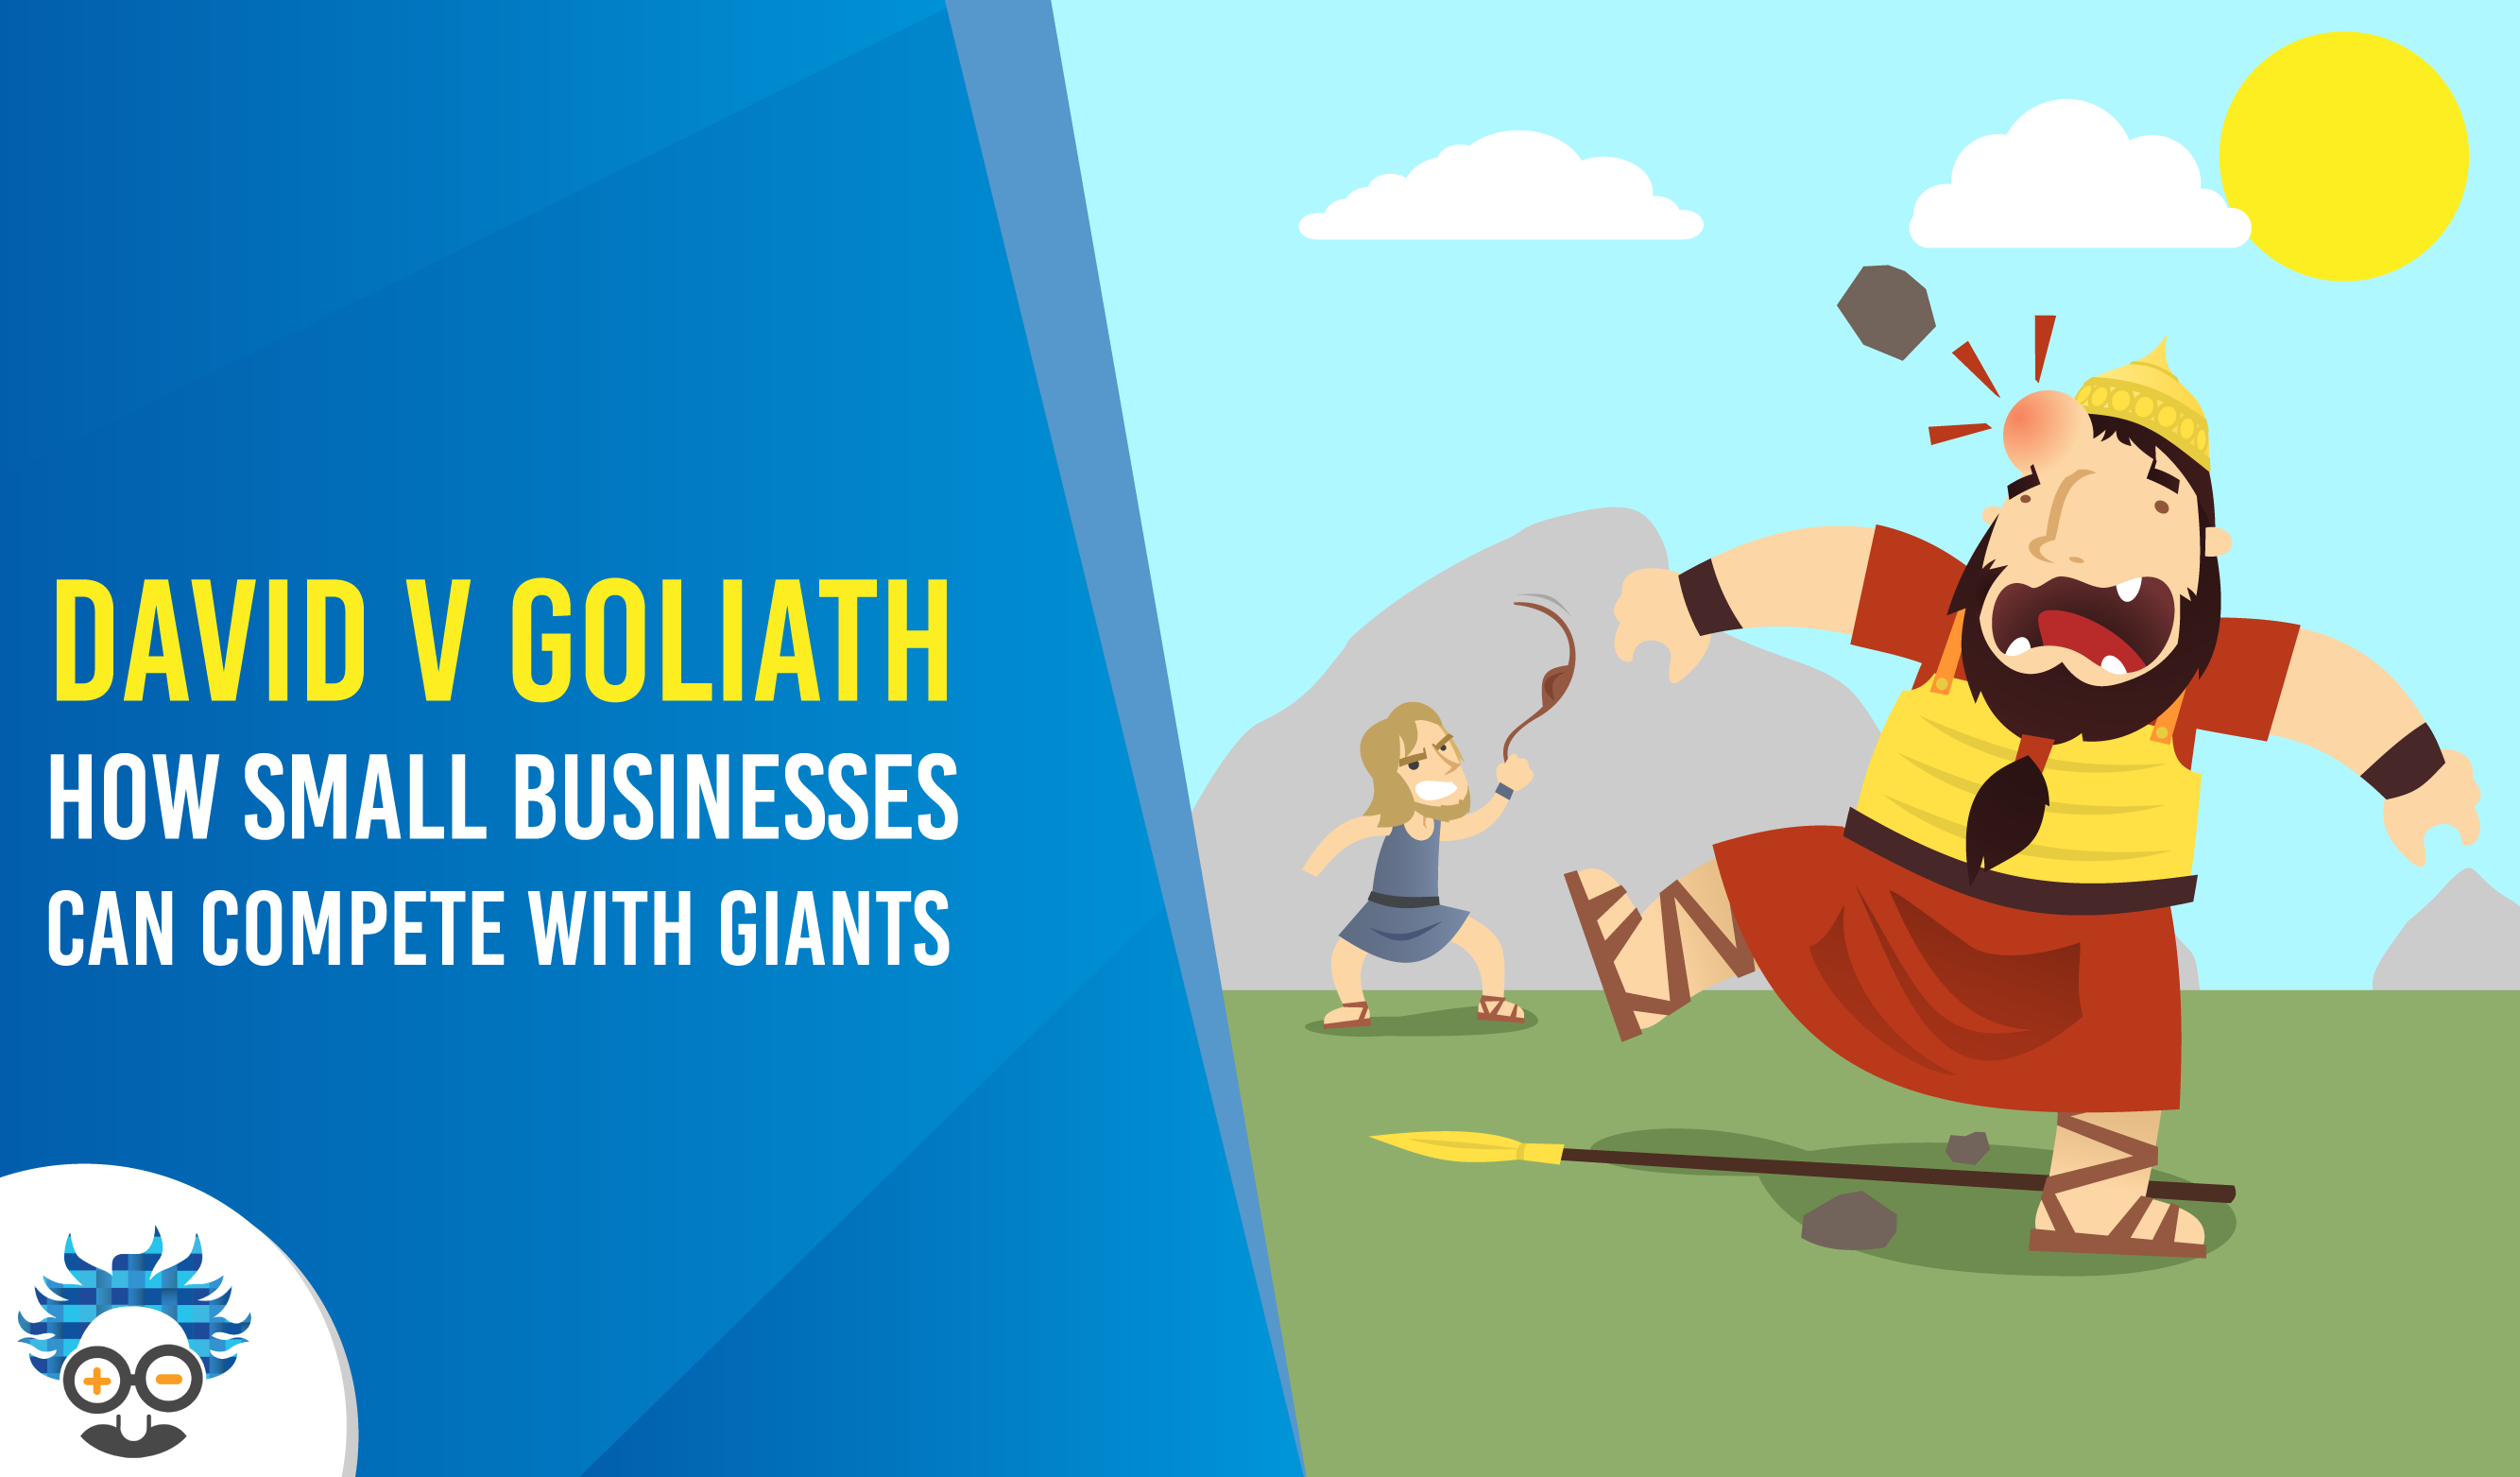 David Goliath business